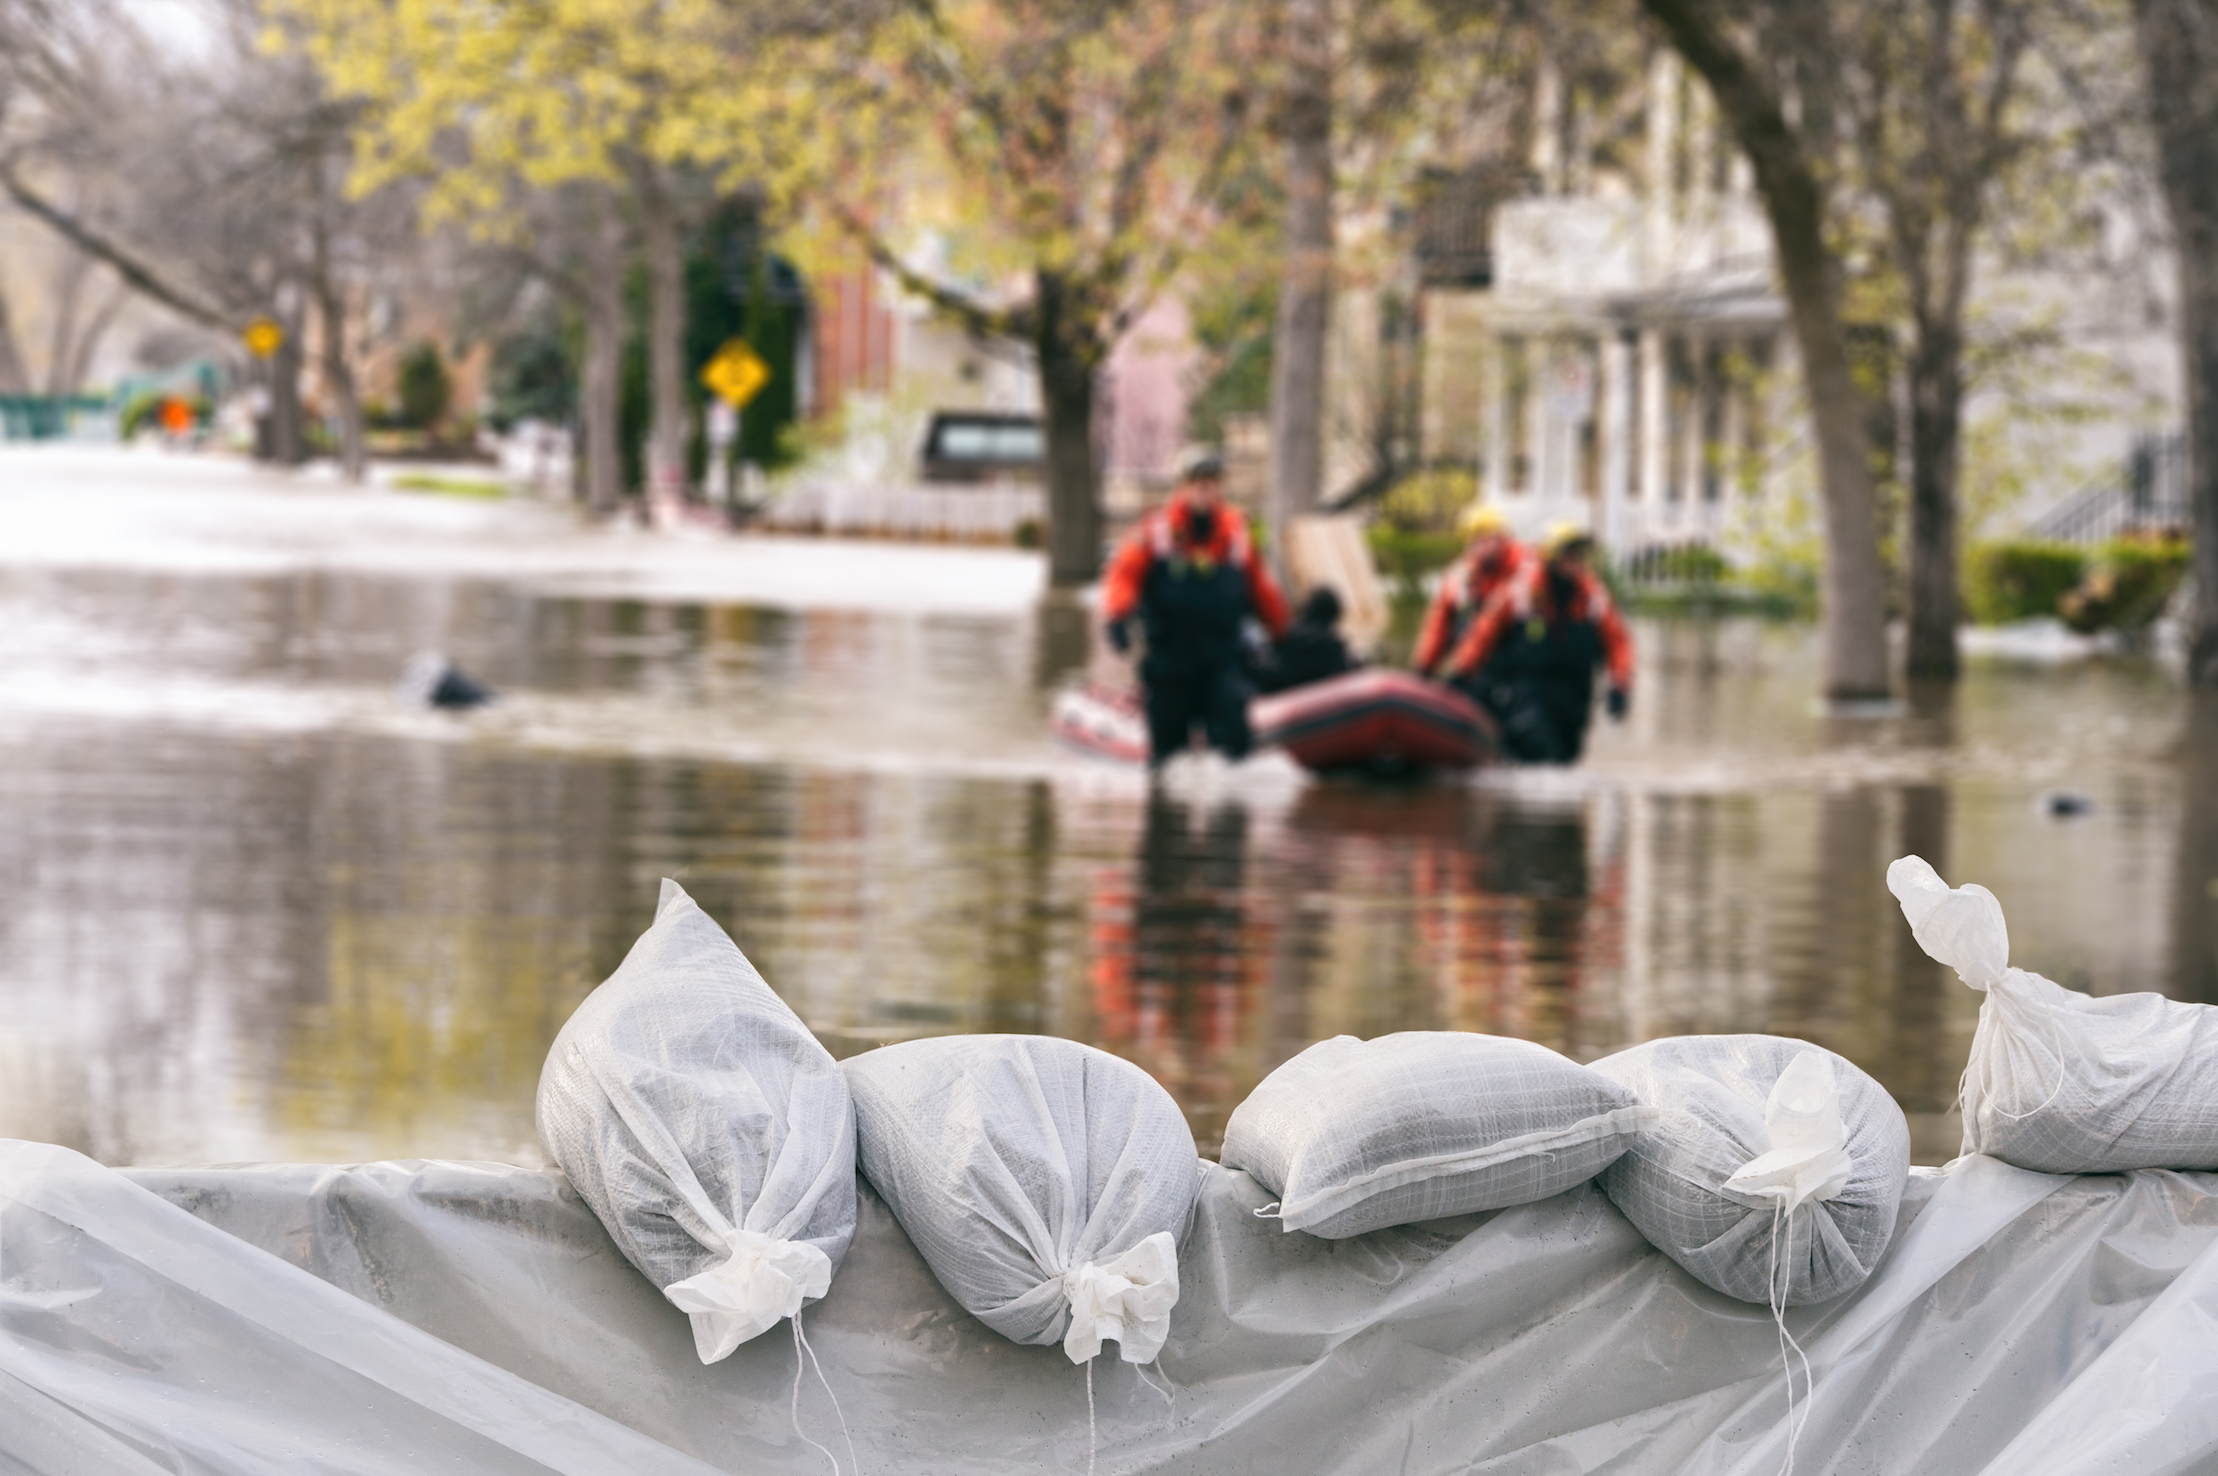 New research examines the public's readiness for extreme weather and discusses measures to improve emergency response systems.